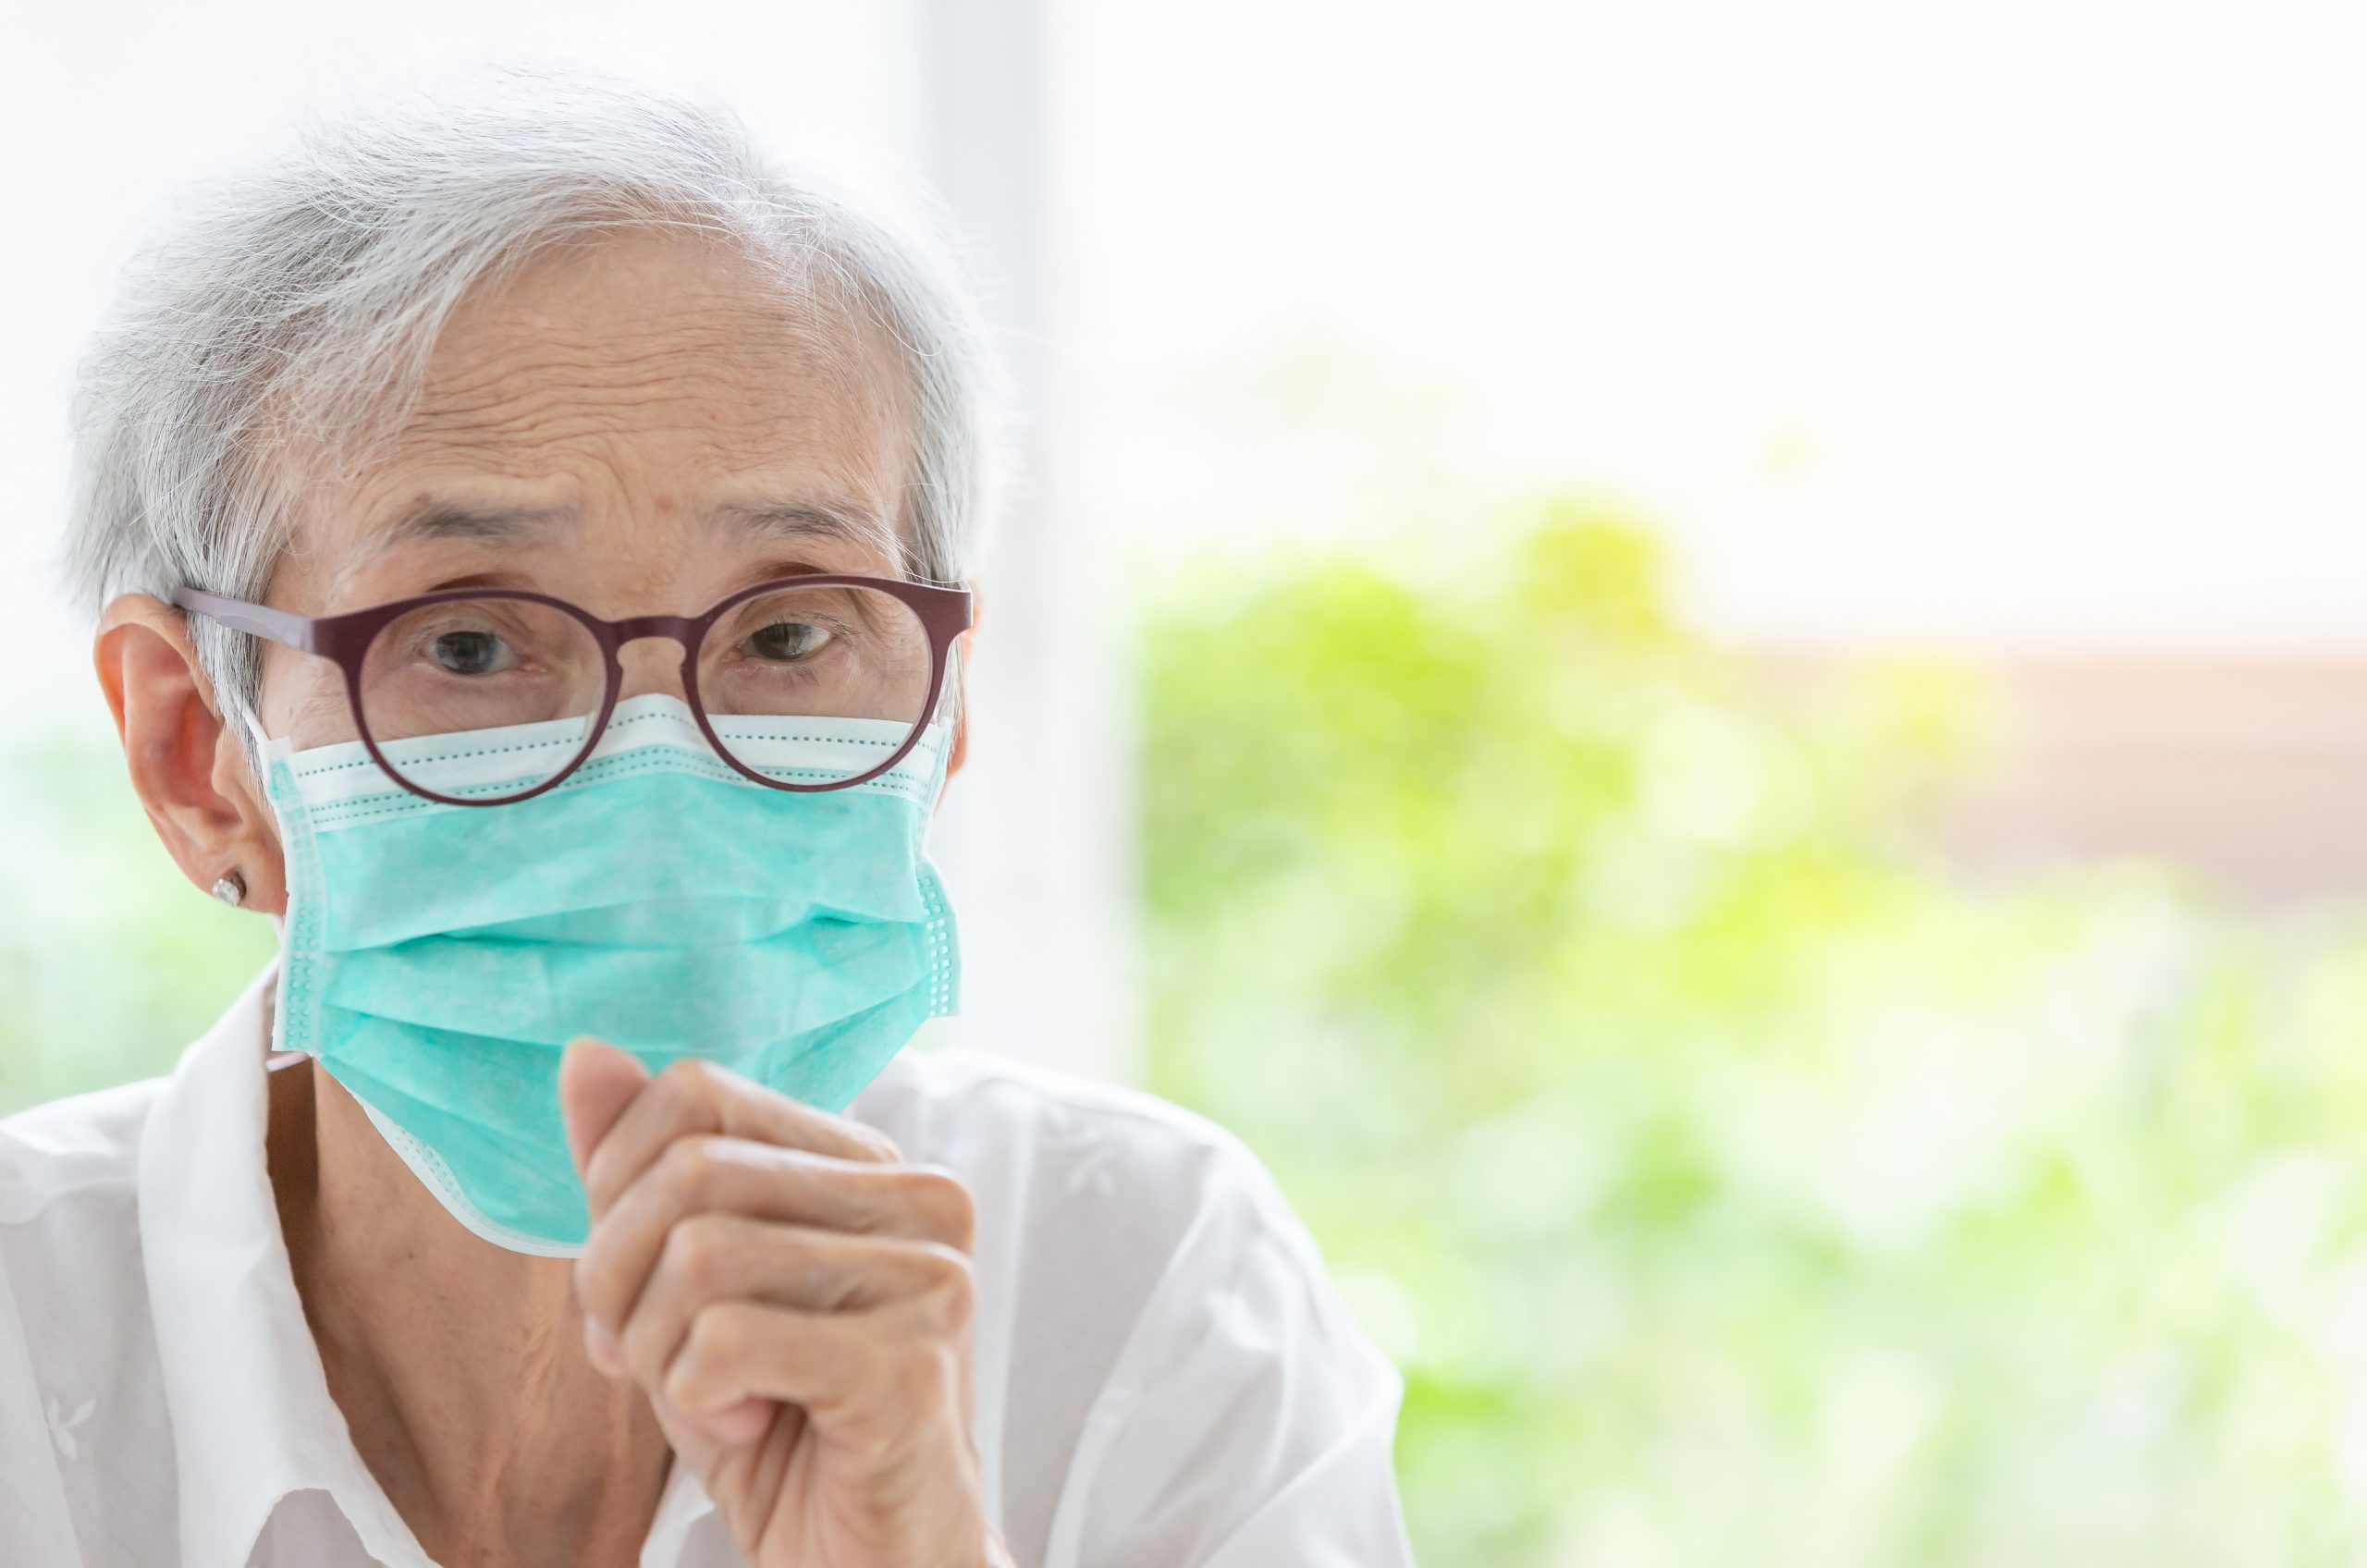 All the Necessary Facts and Precautions About Coronavirus for Seniors